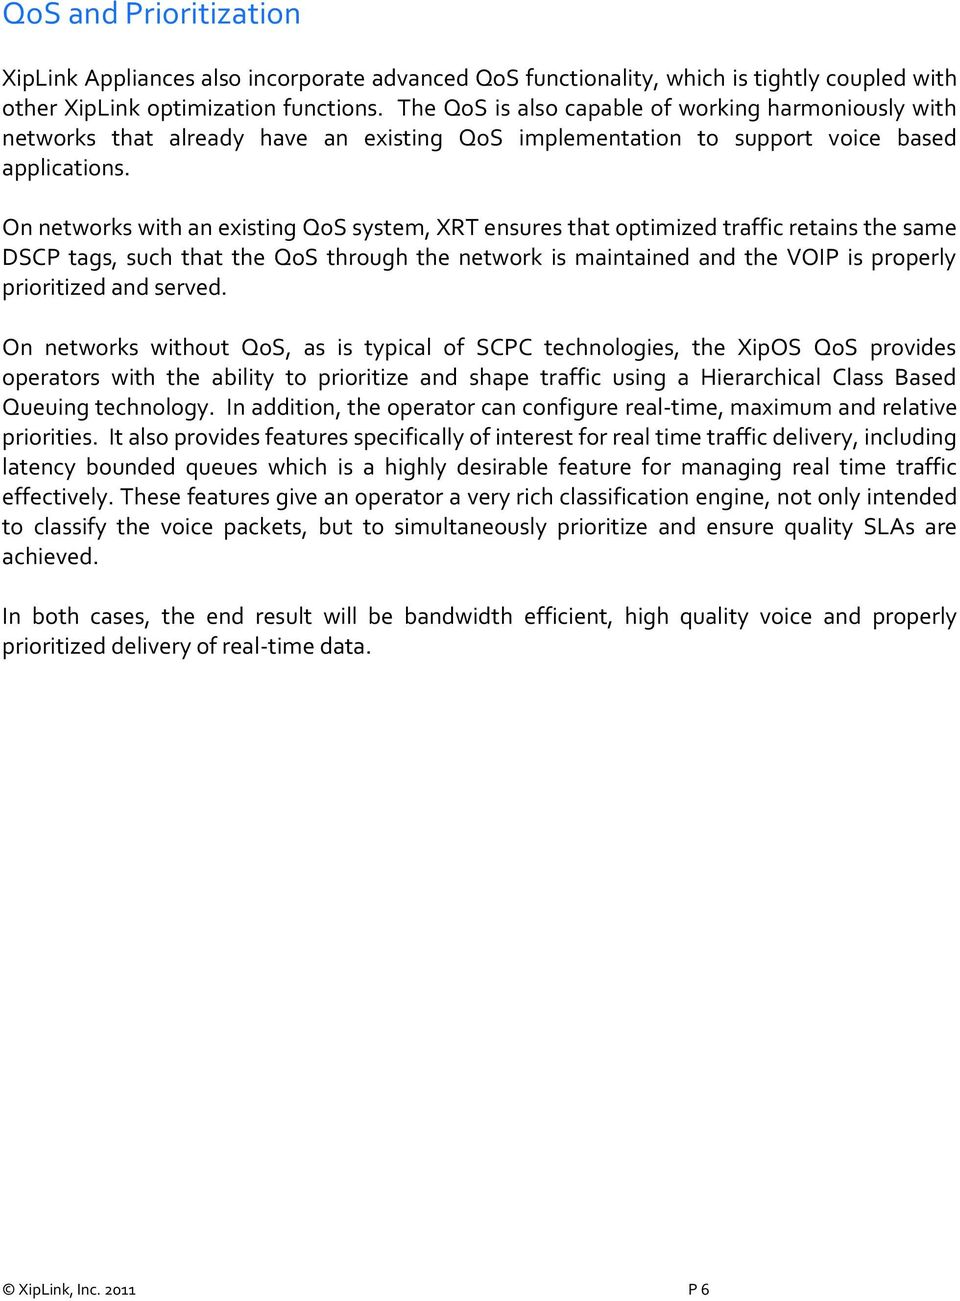 On networks with an existing QoS system, XRT ensures that optimized traffic retains the same DSCP tags, such that the QoS through the network is maintained and the VOIP is properly prioritized and